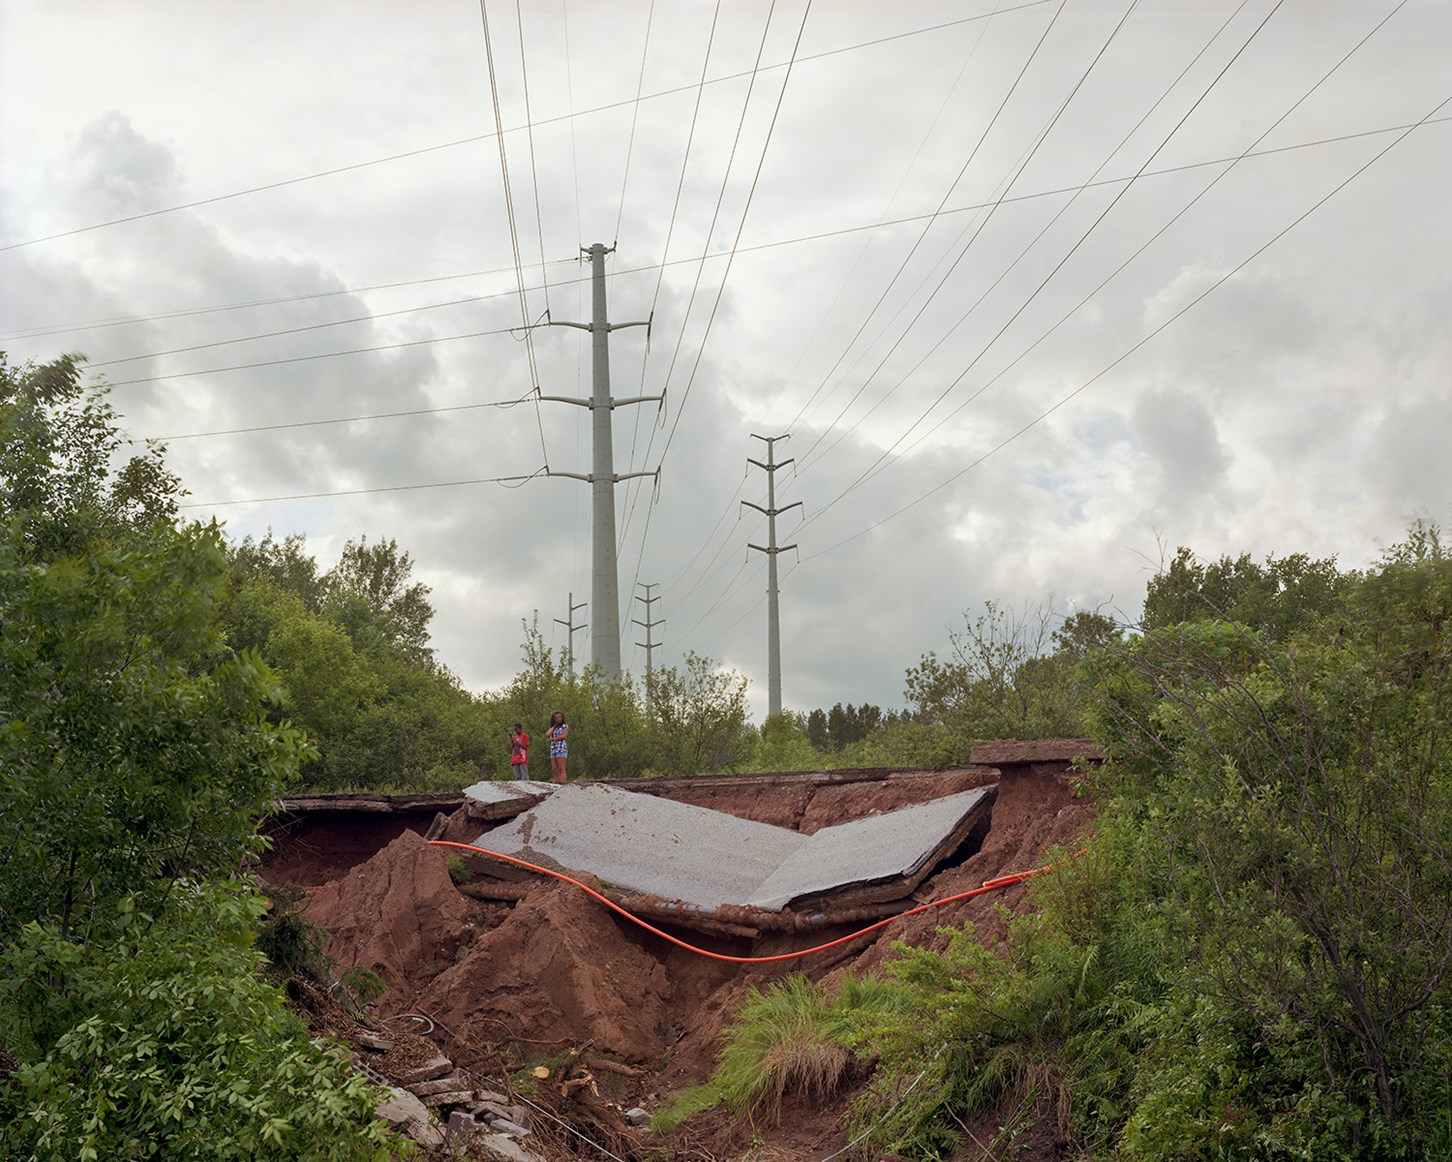 Westgate Blvd Collapse, Duluth, Minnesota, June 2012